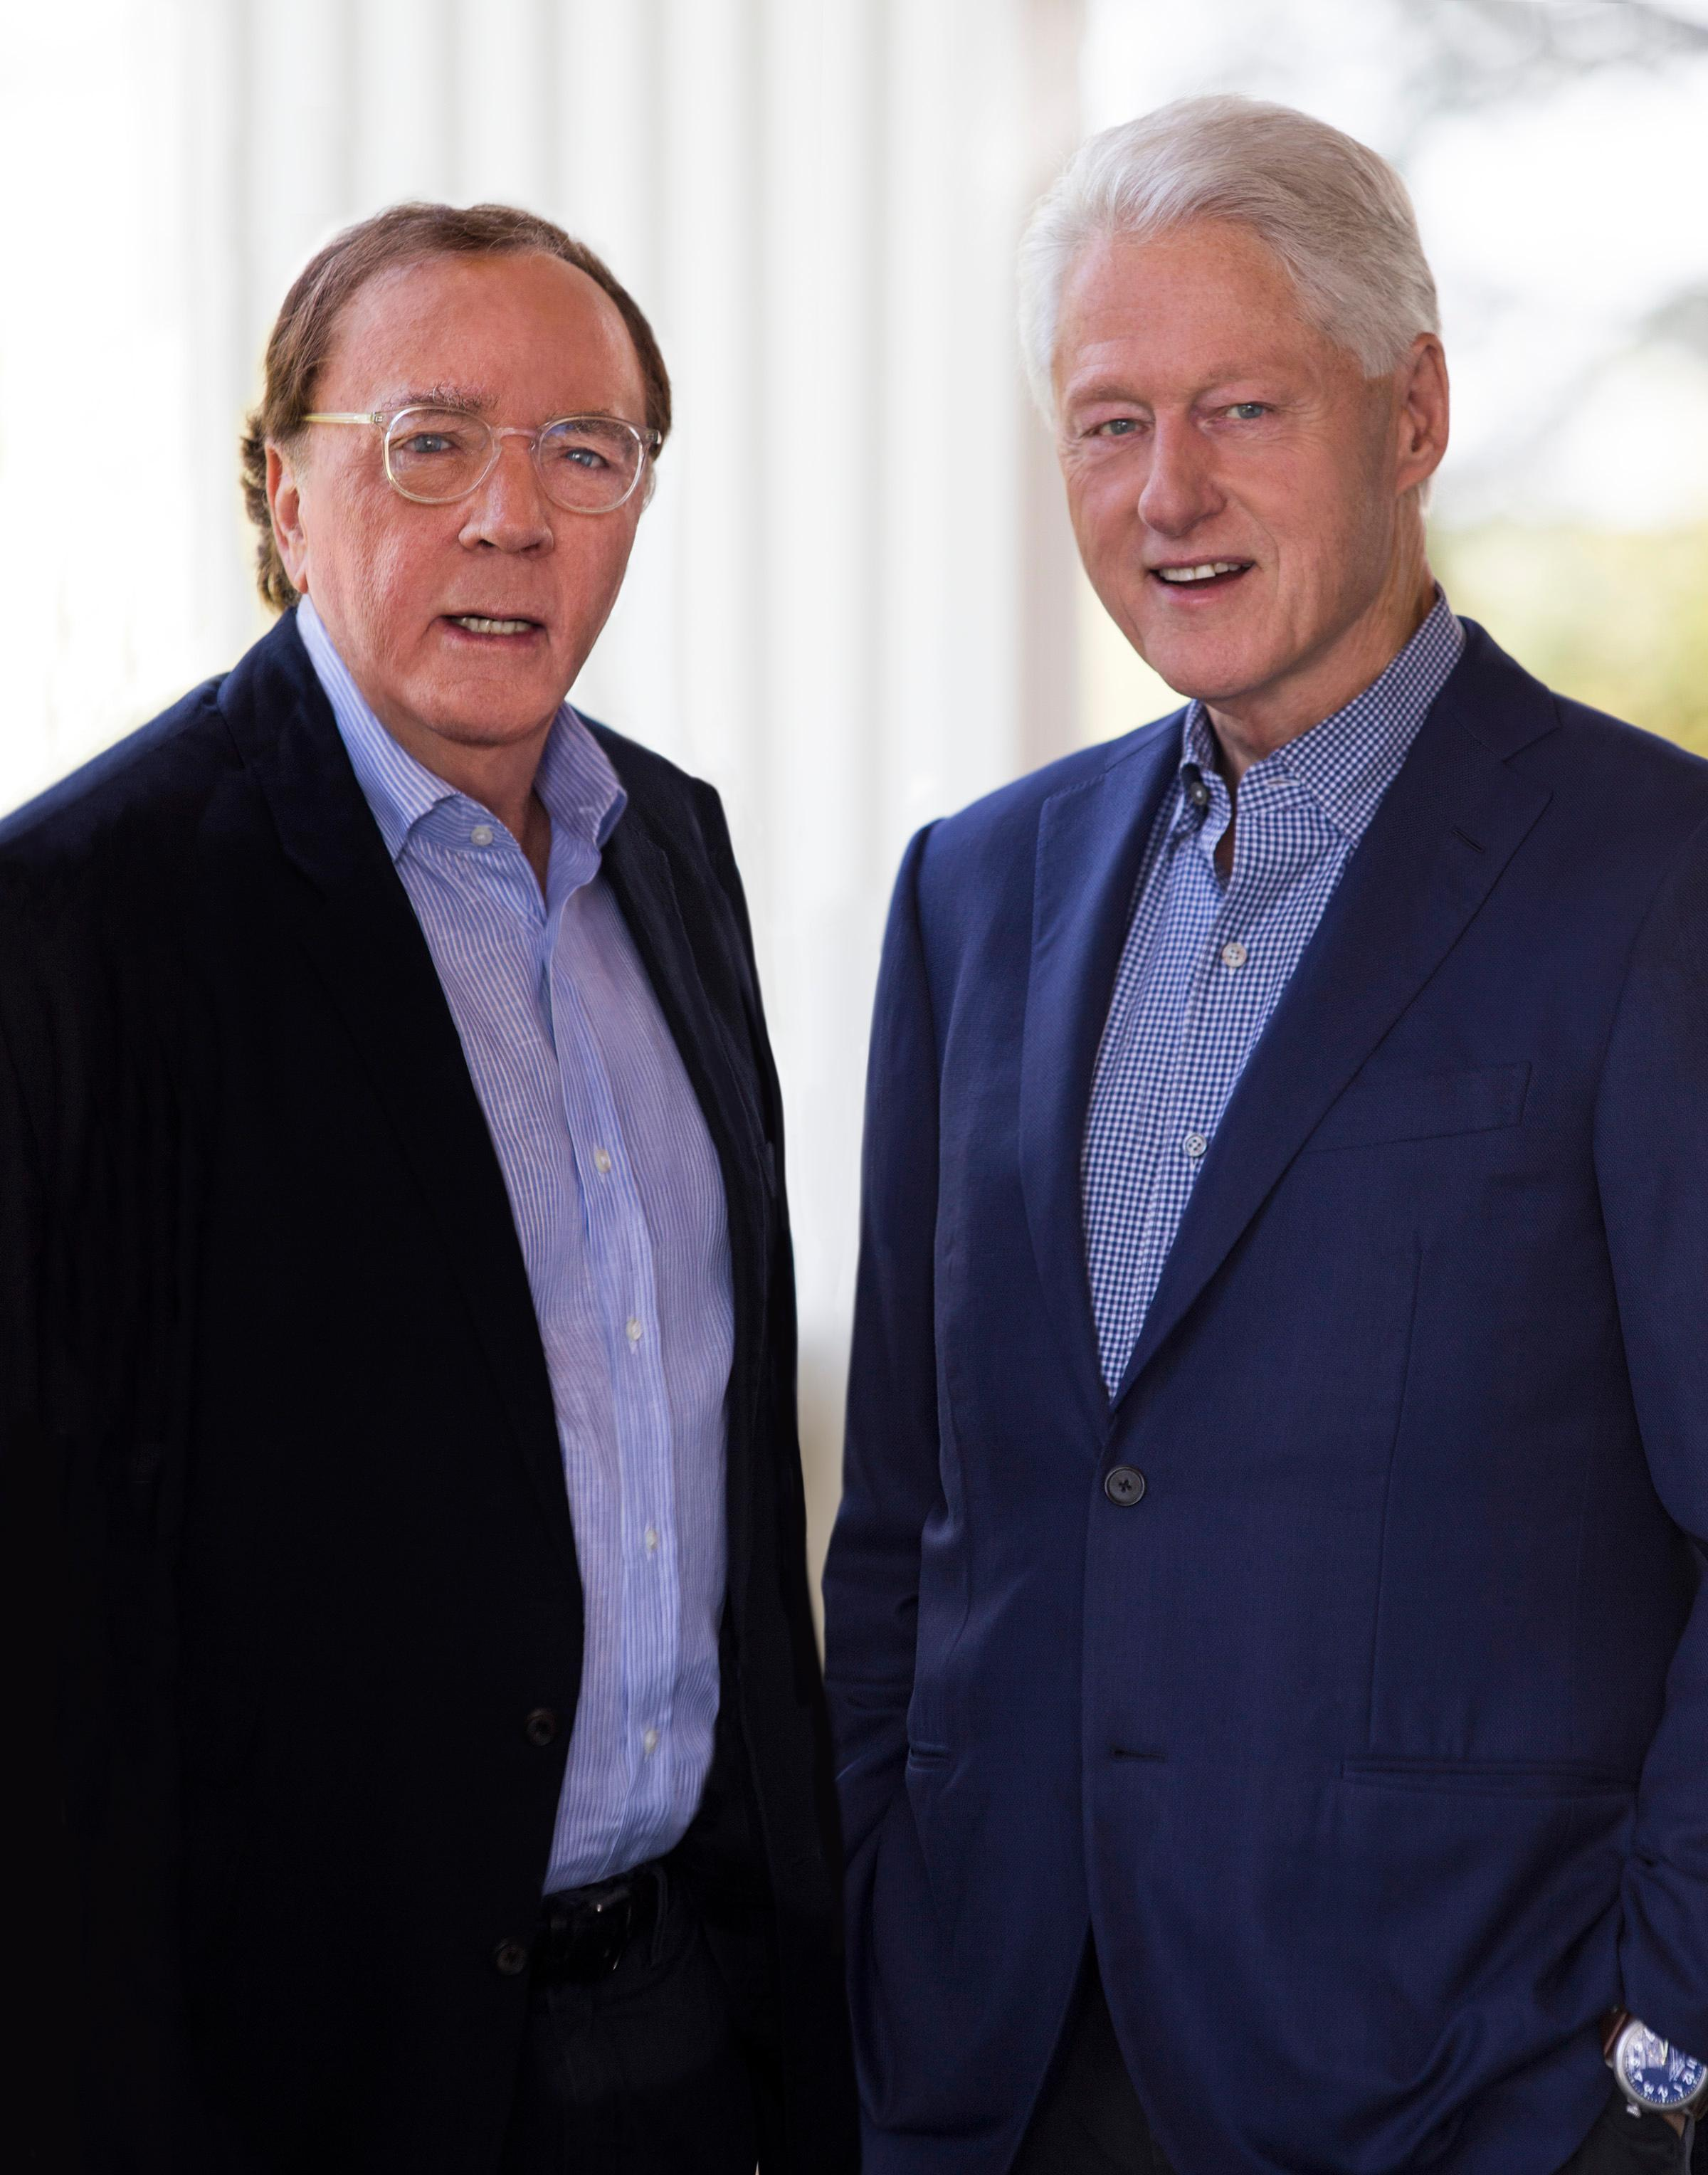 James Patterson and Bill Clinton, co-authors of The President is Missing{ } (Image:{ } David Burnett){ }